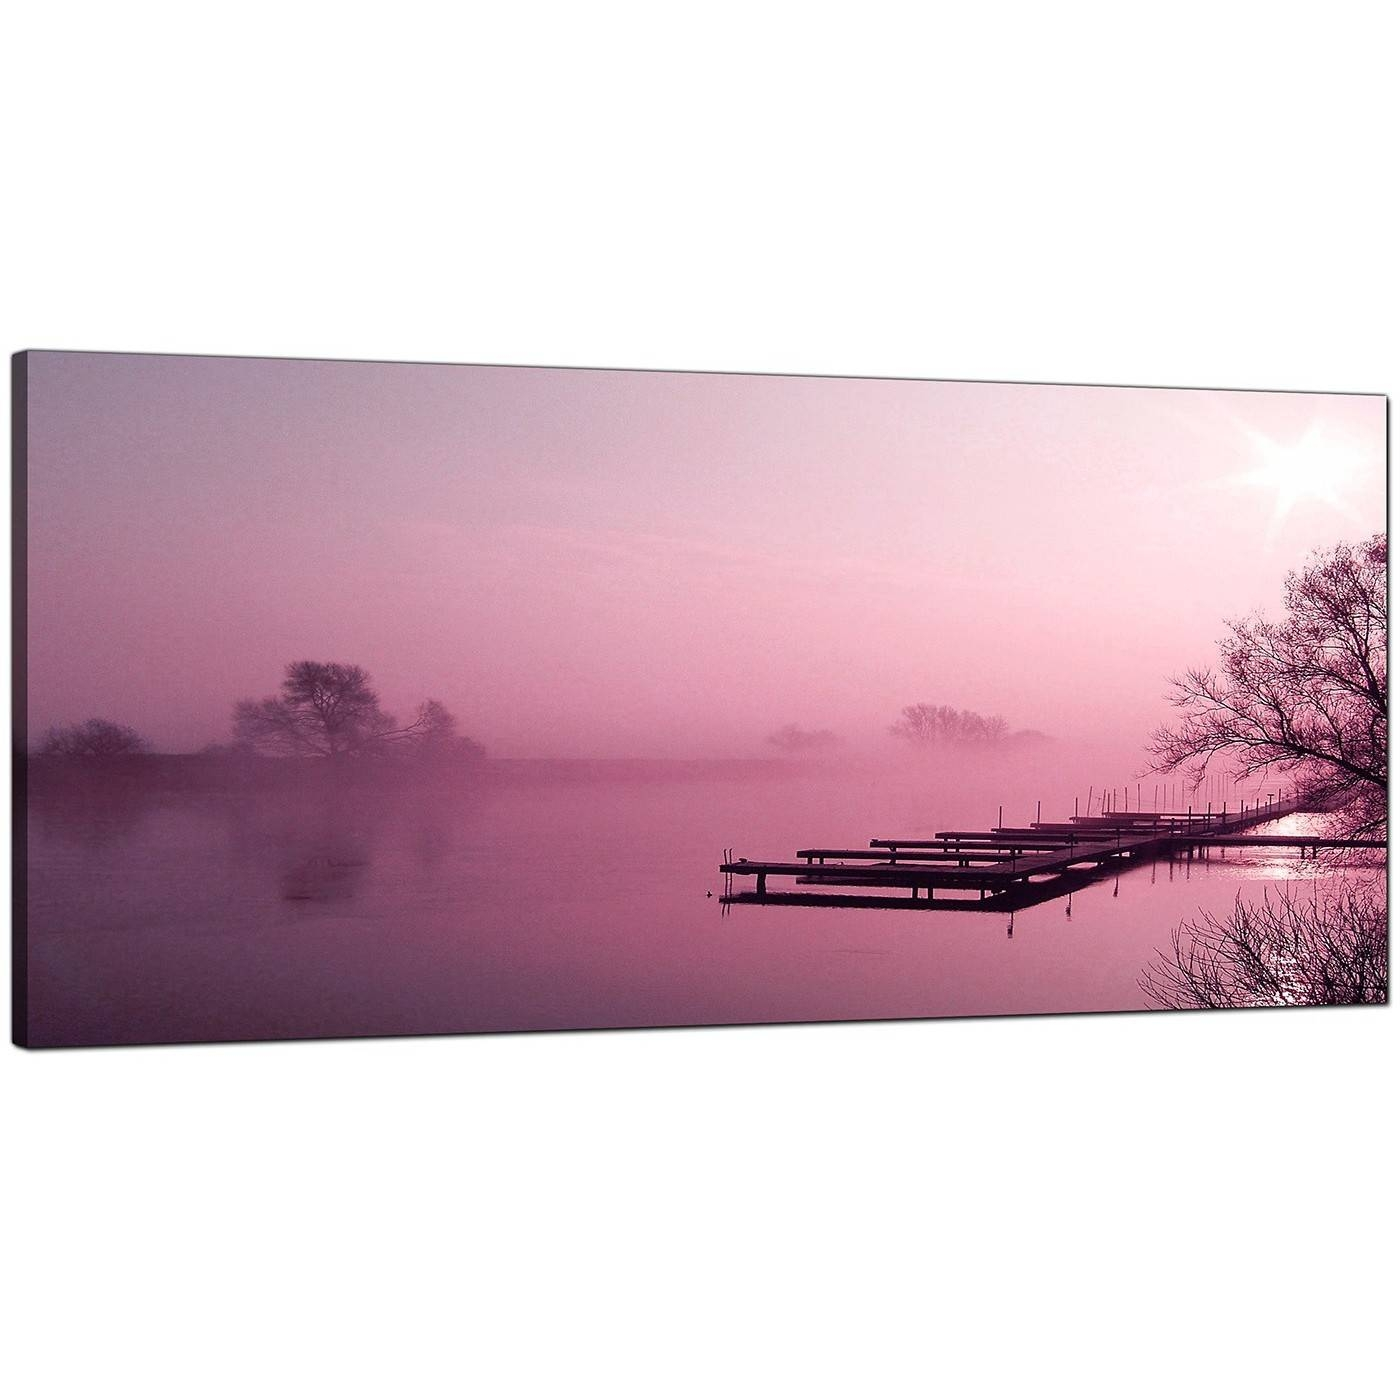 Cheap Plum Canvas Prints Of A River Landscape Intended For Recent Plum Coloured Wall Art (View 14 of 20)